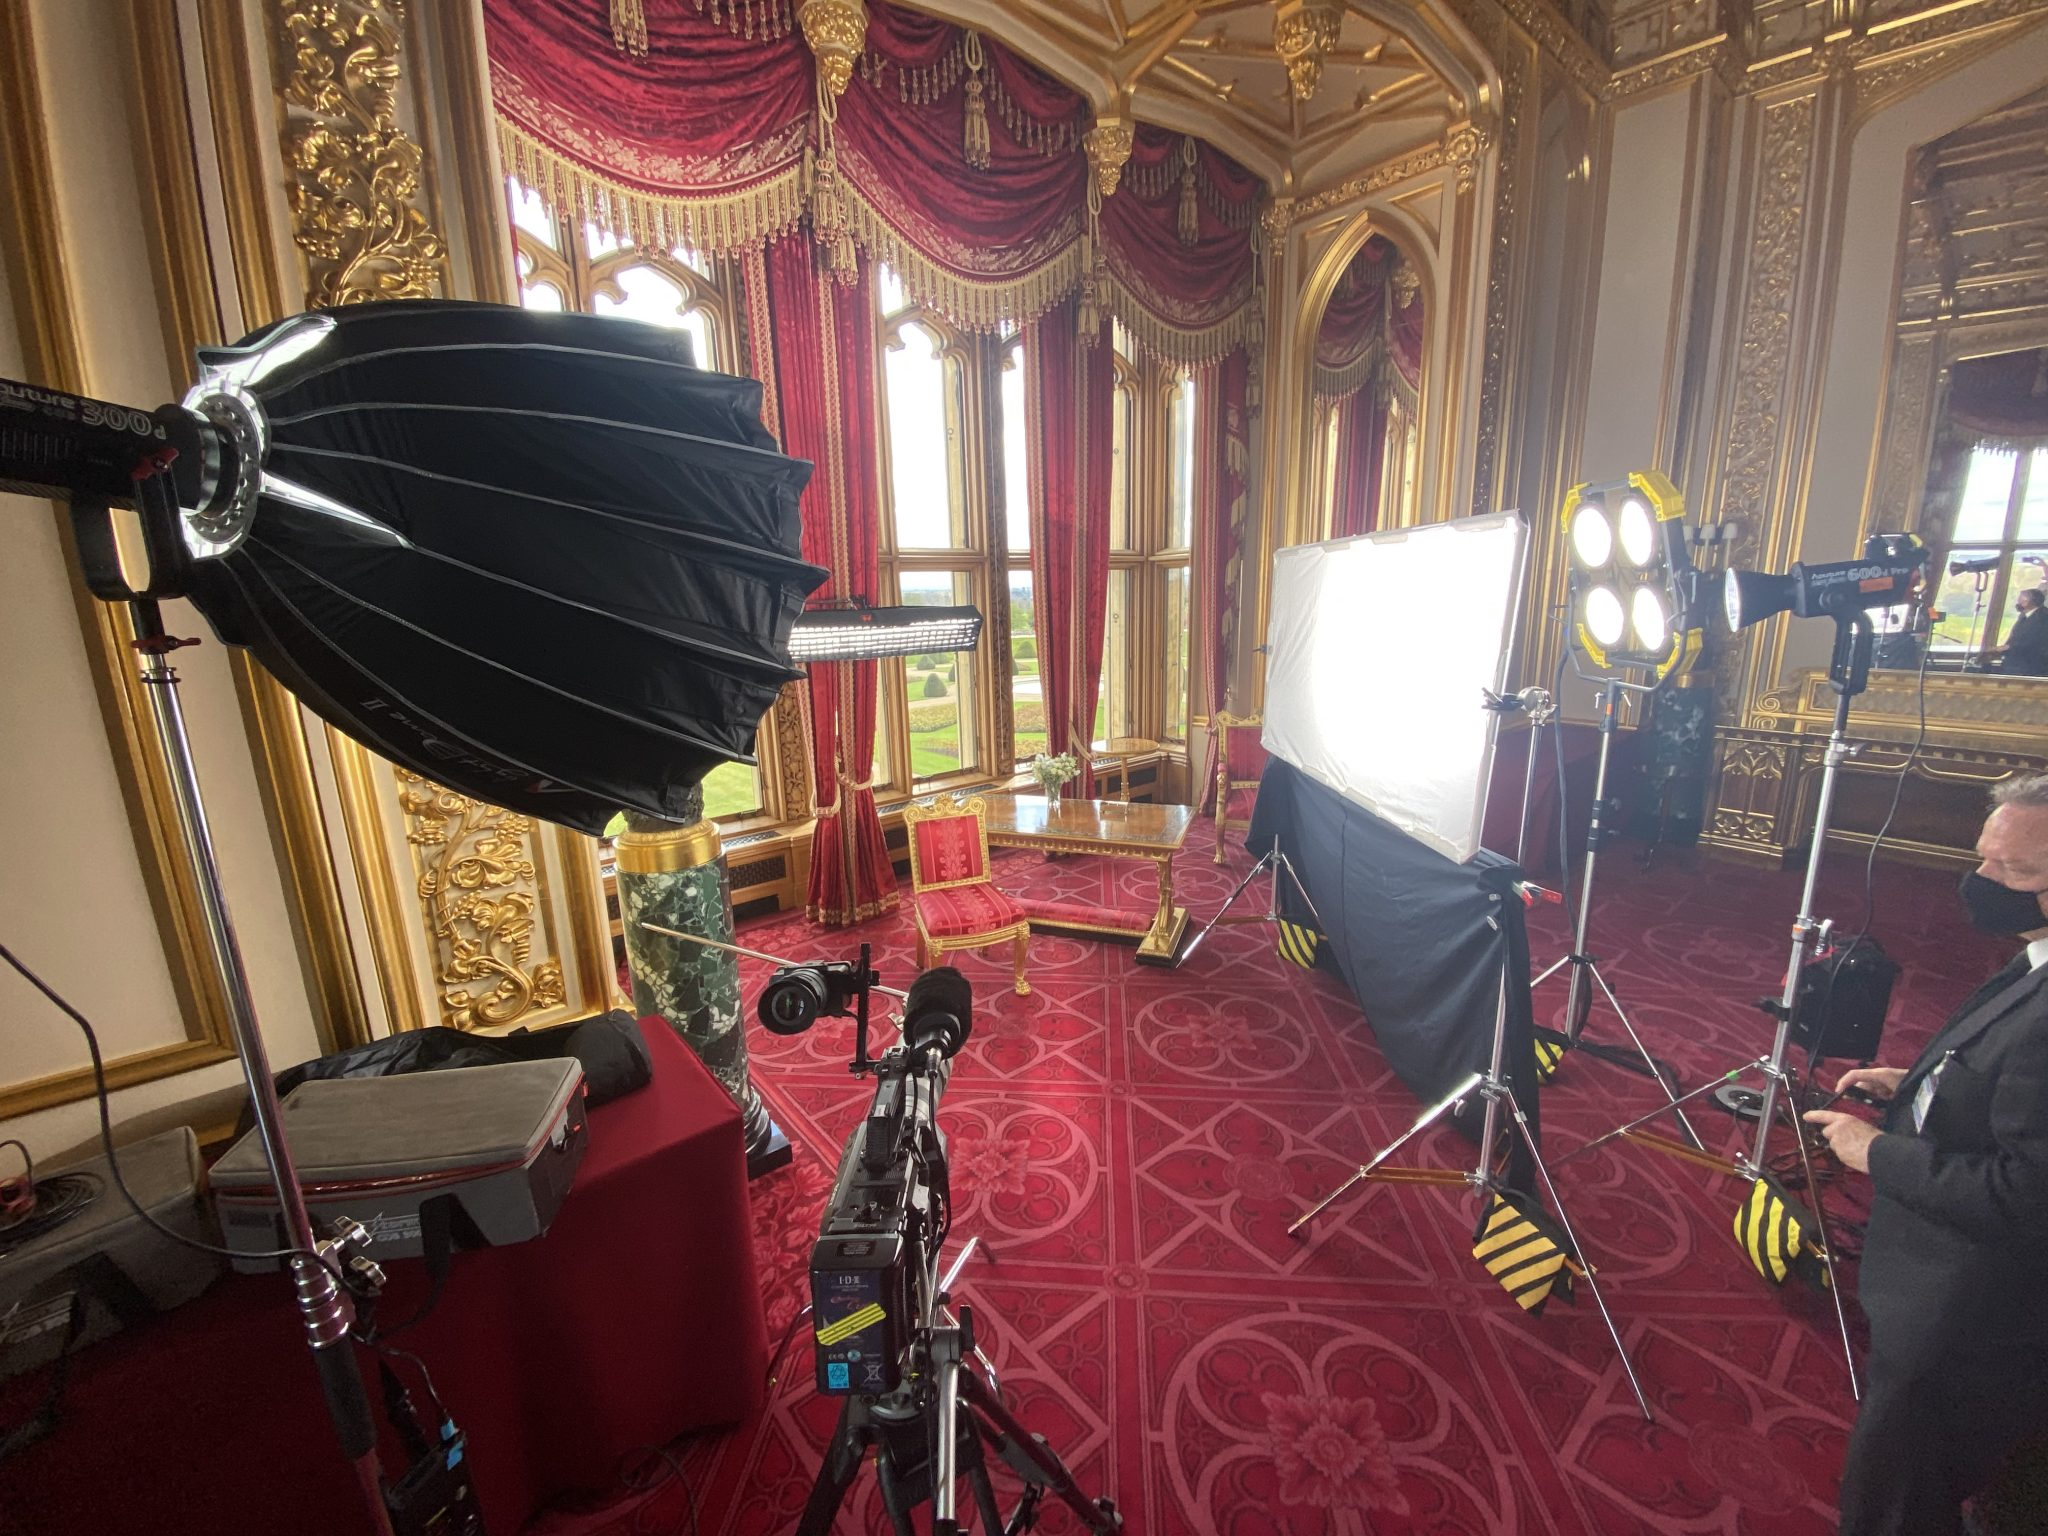 A Piece to camera in a castle